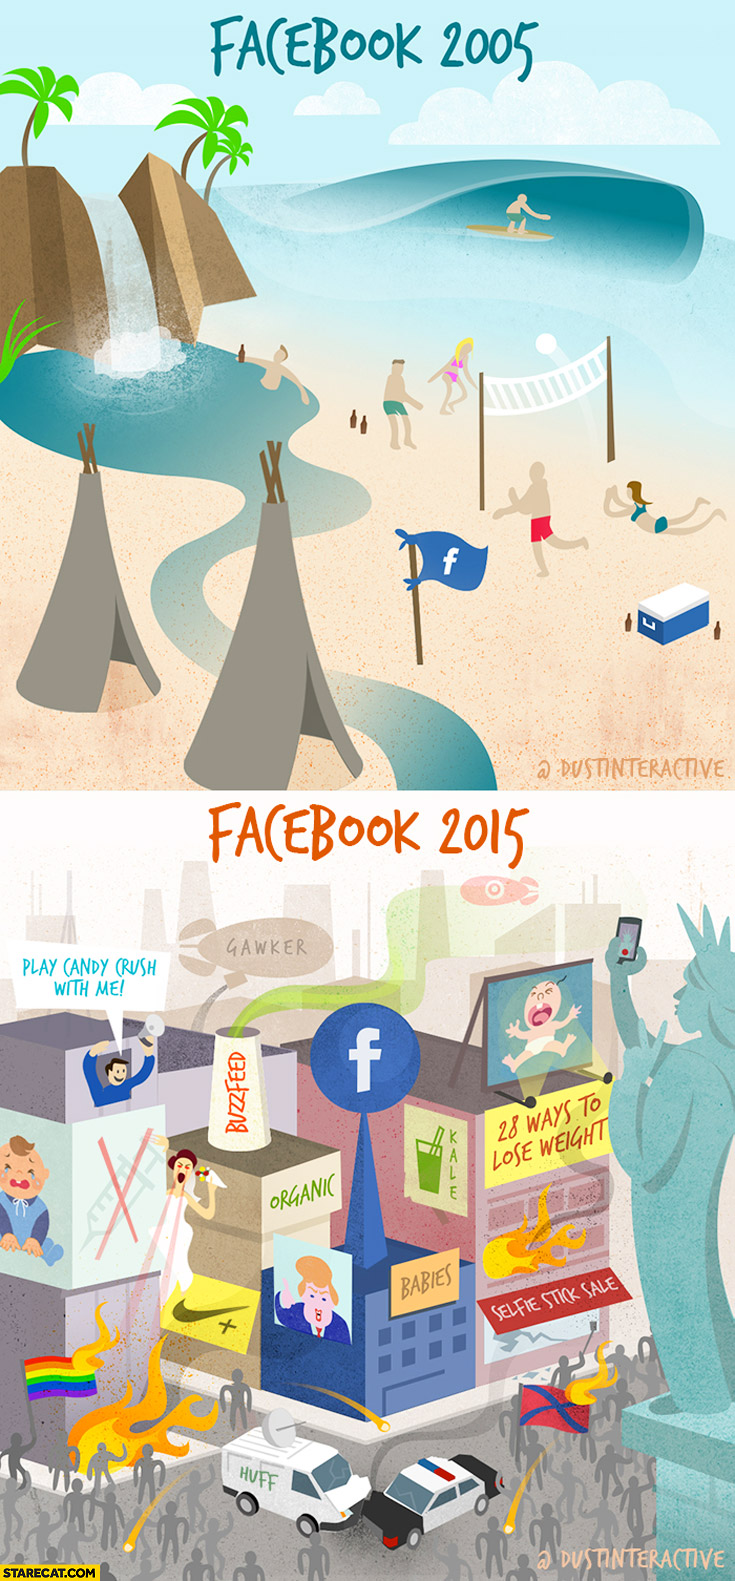 Facebook in 2005 holidays compared to facebook in 2015 crowded mess